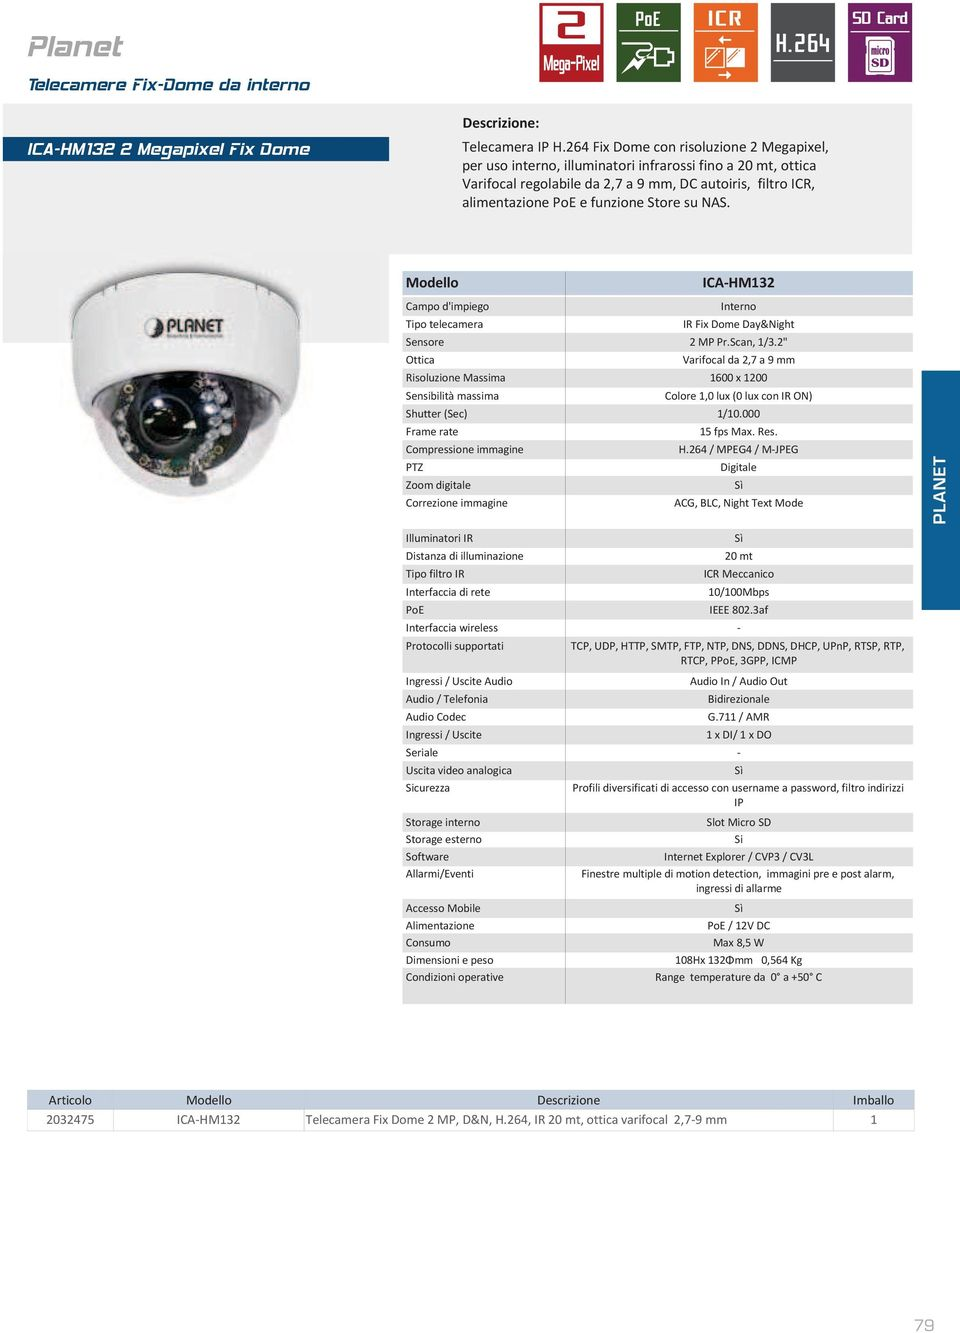 "su NAS. ICA-HM132 Interno IR Fix Dome Day&Night Sensore 2 MP Pr.Scan, 1/3.2"" Varifocal da 2,7 a 9 mm Risoluzione Massima 1600 x 1200 Colore 1,0 lux (0 lux con IR ON) 15 fps Max. Res."